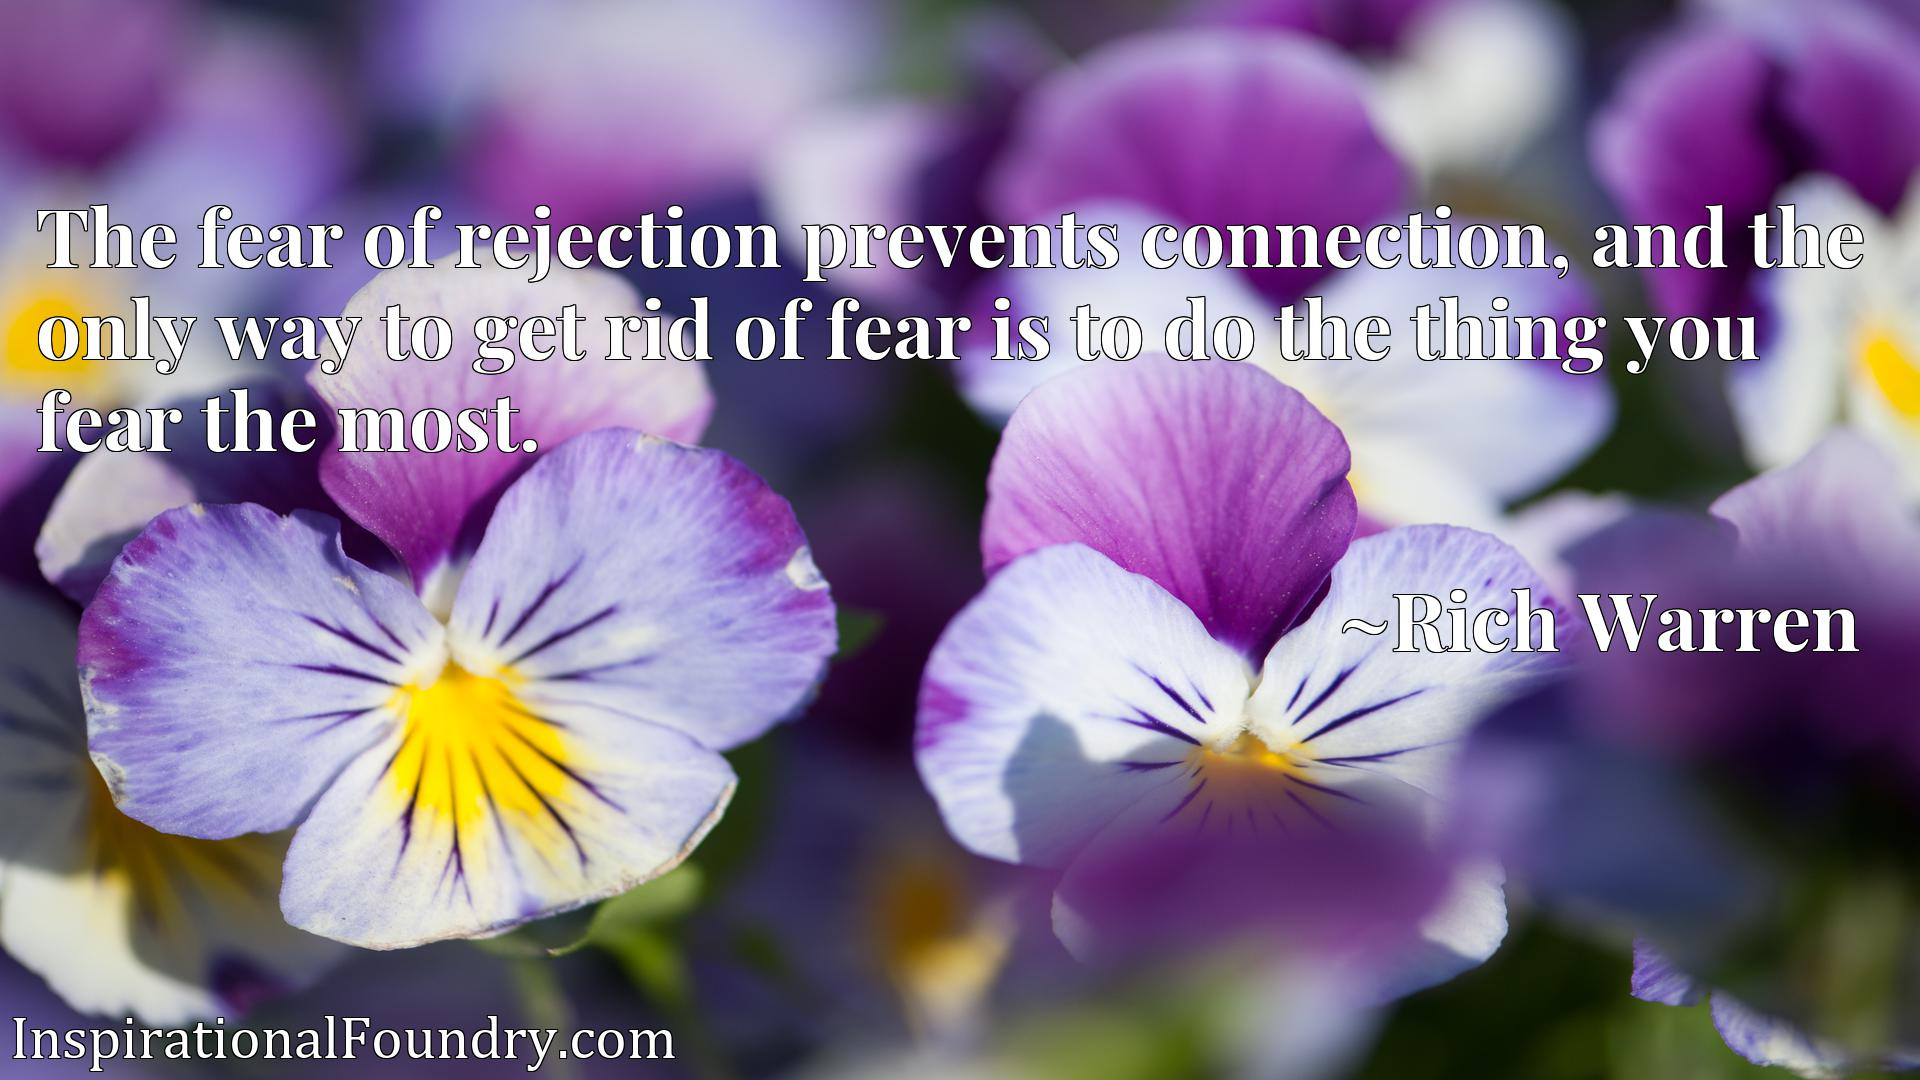 The fear of rejection prevents connection, and the only way to get rid of fear is to do the thing you fear the most.